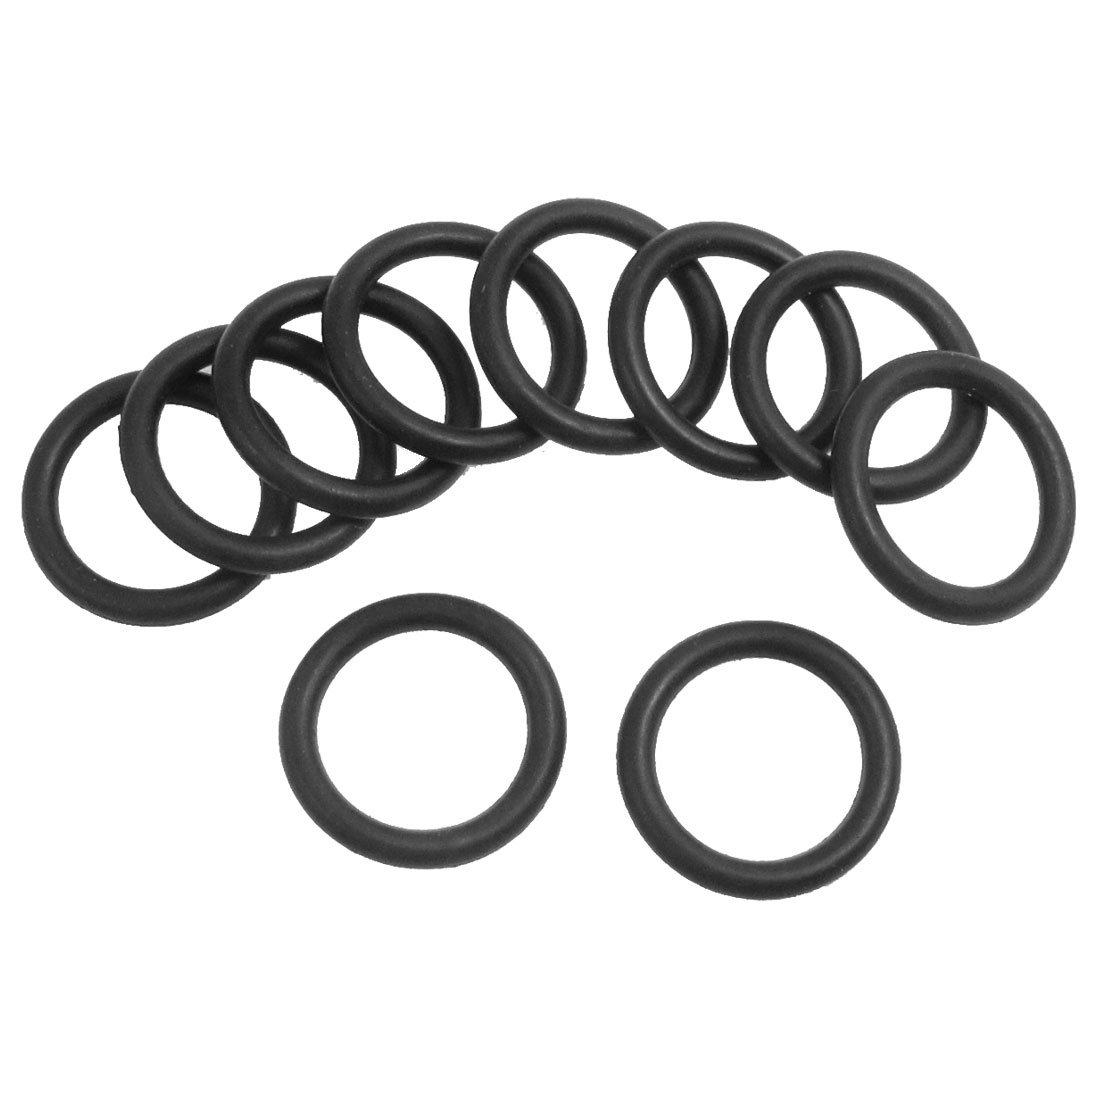 10 Pcs 19mm x 3.5mm Black Rubber O Rings Oil Seals Gaskets